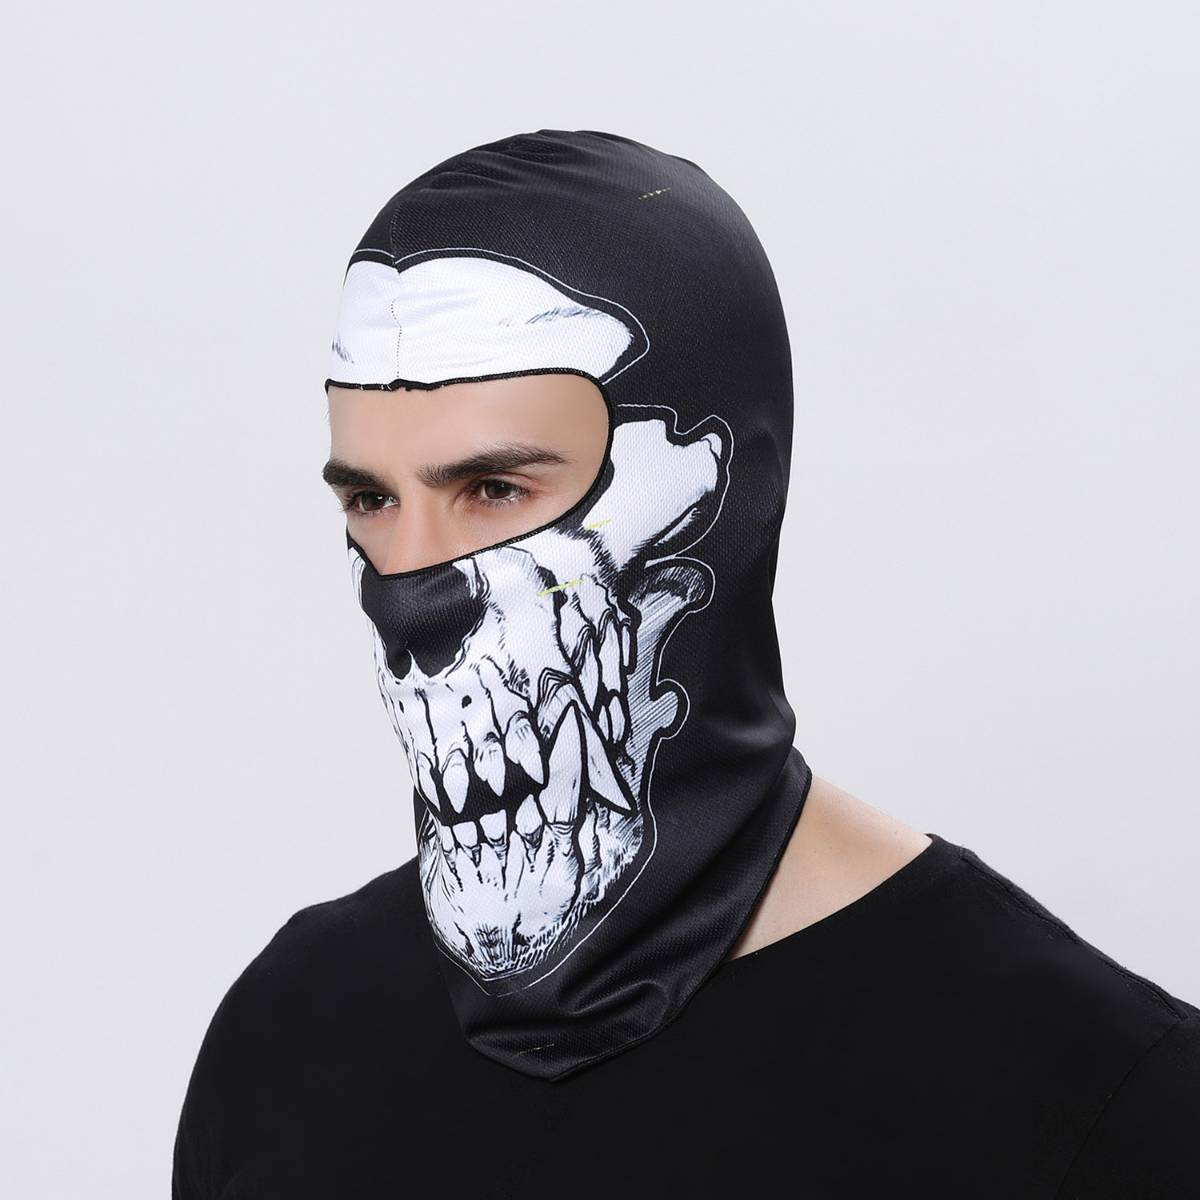 Masker Motor / Sepeda / Olah Raga Balaclava Motif 09